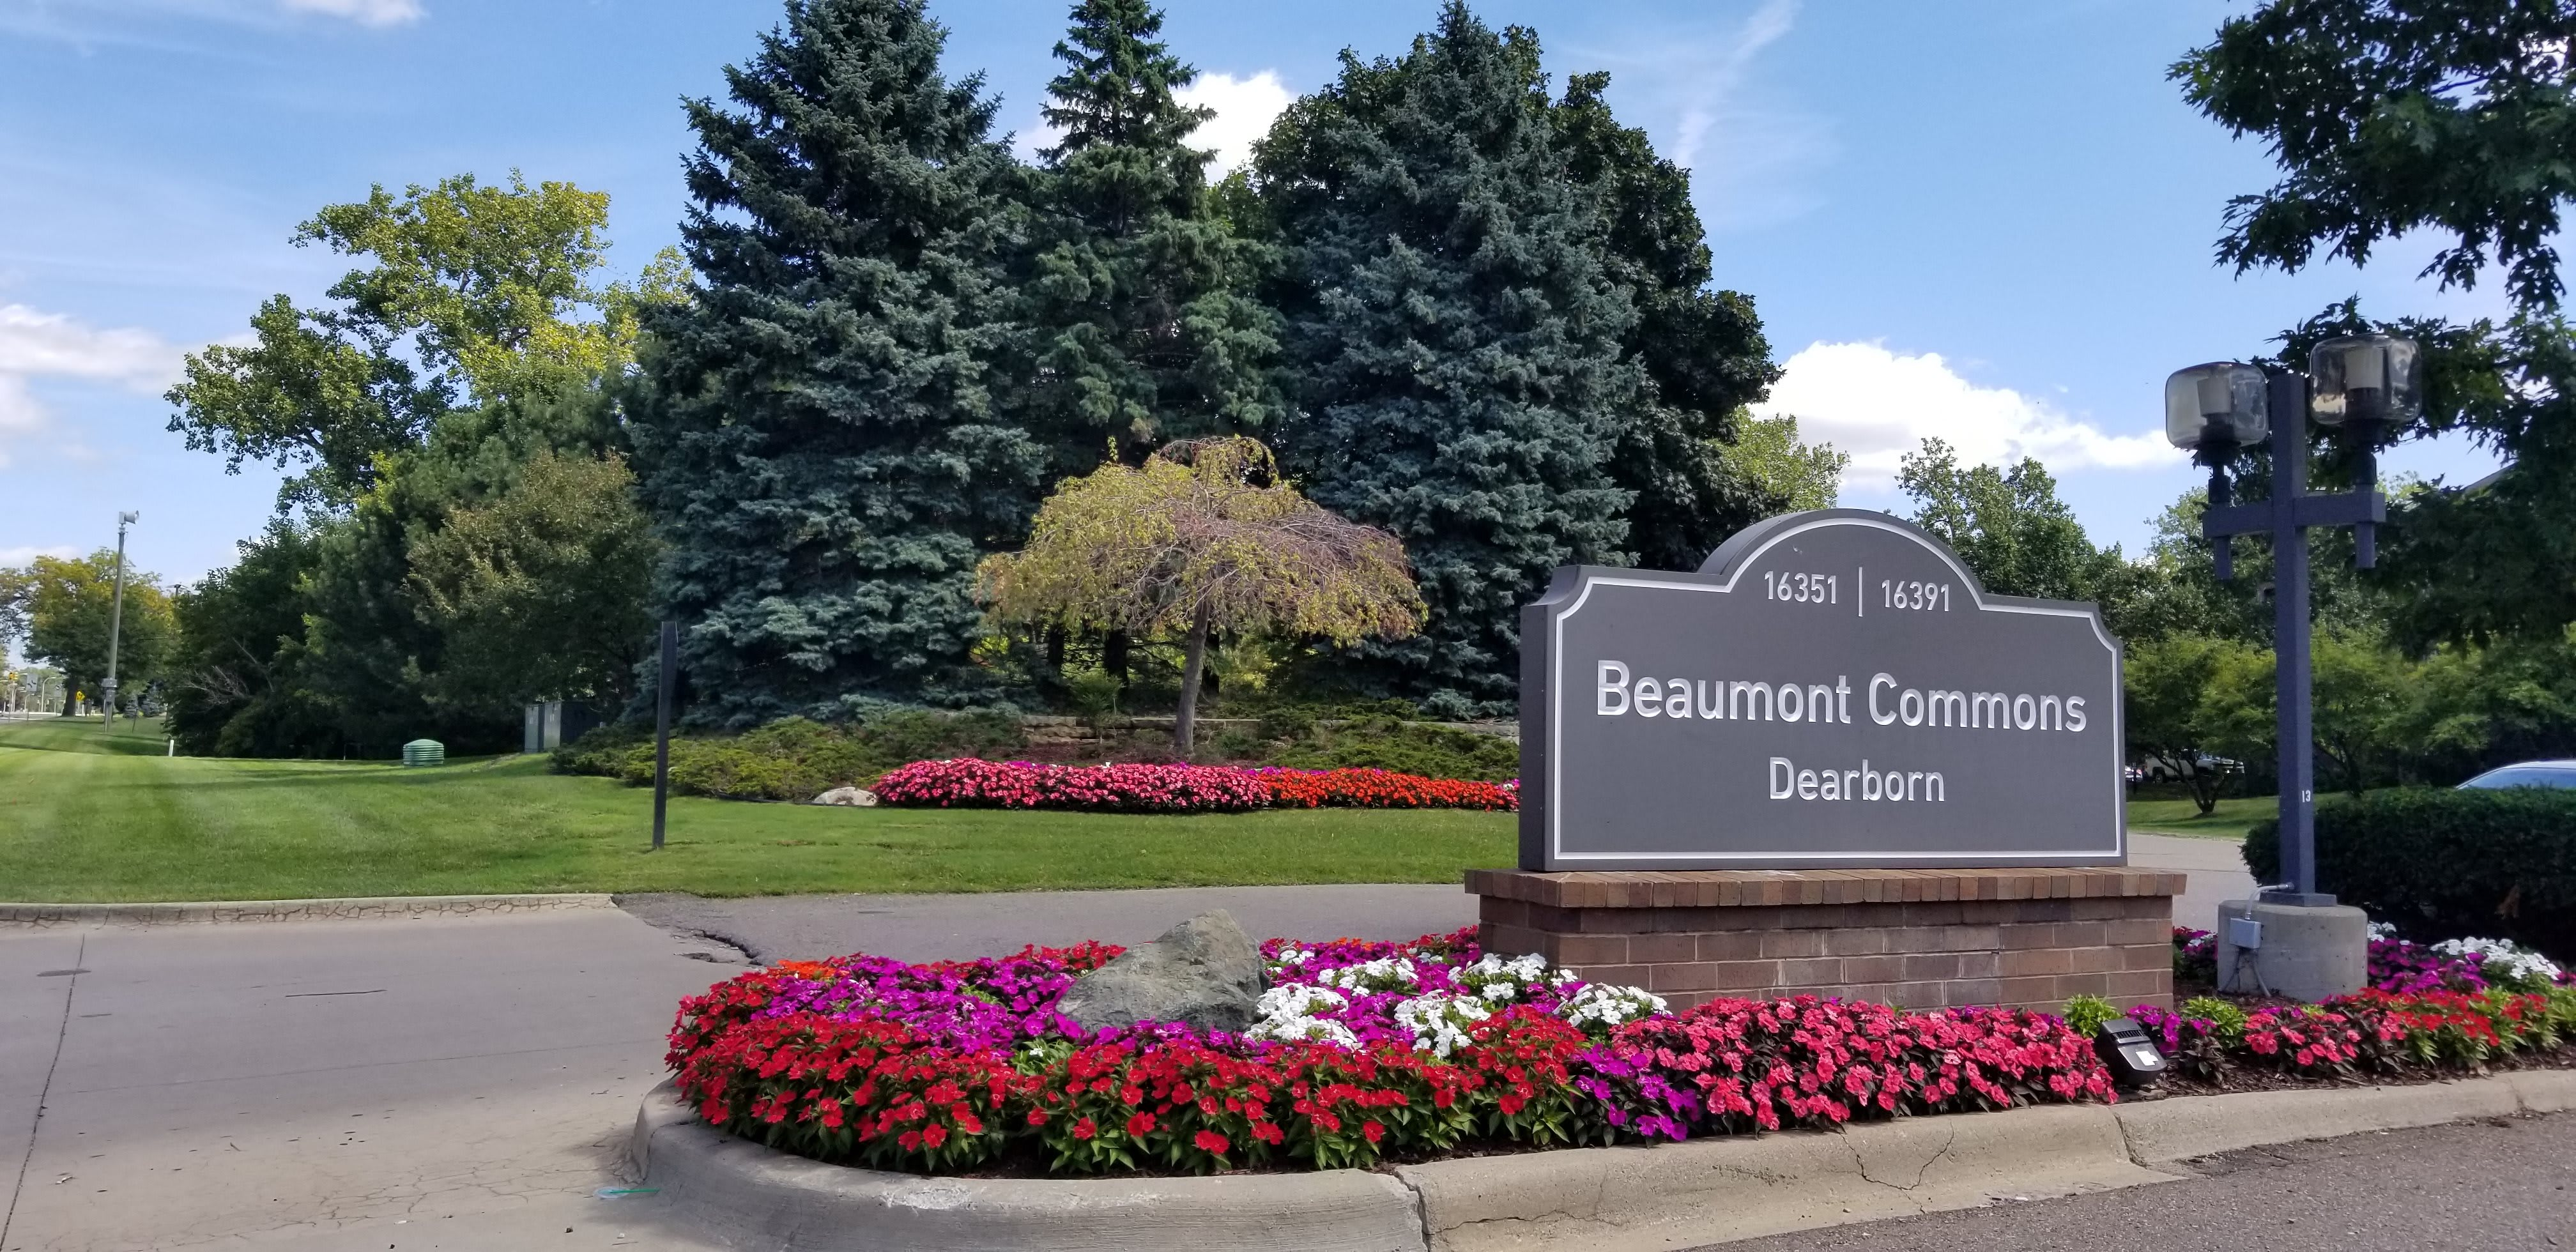 Photo 1 of Beaumont Commons Dearborn